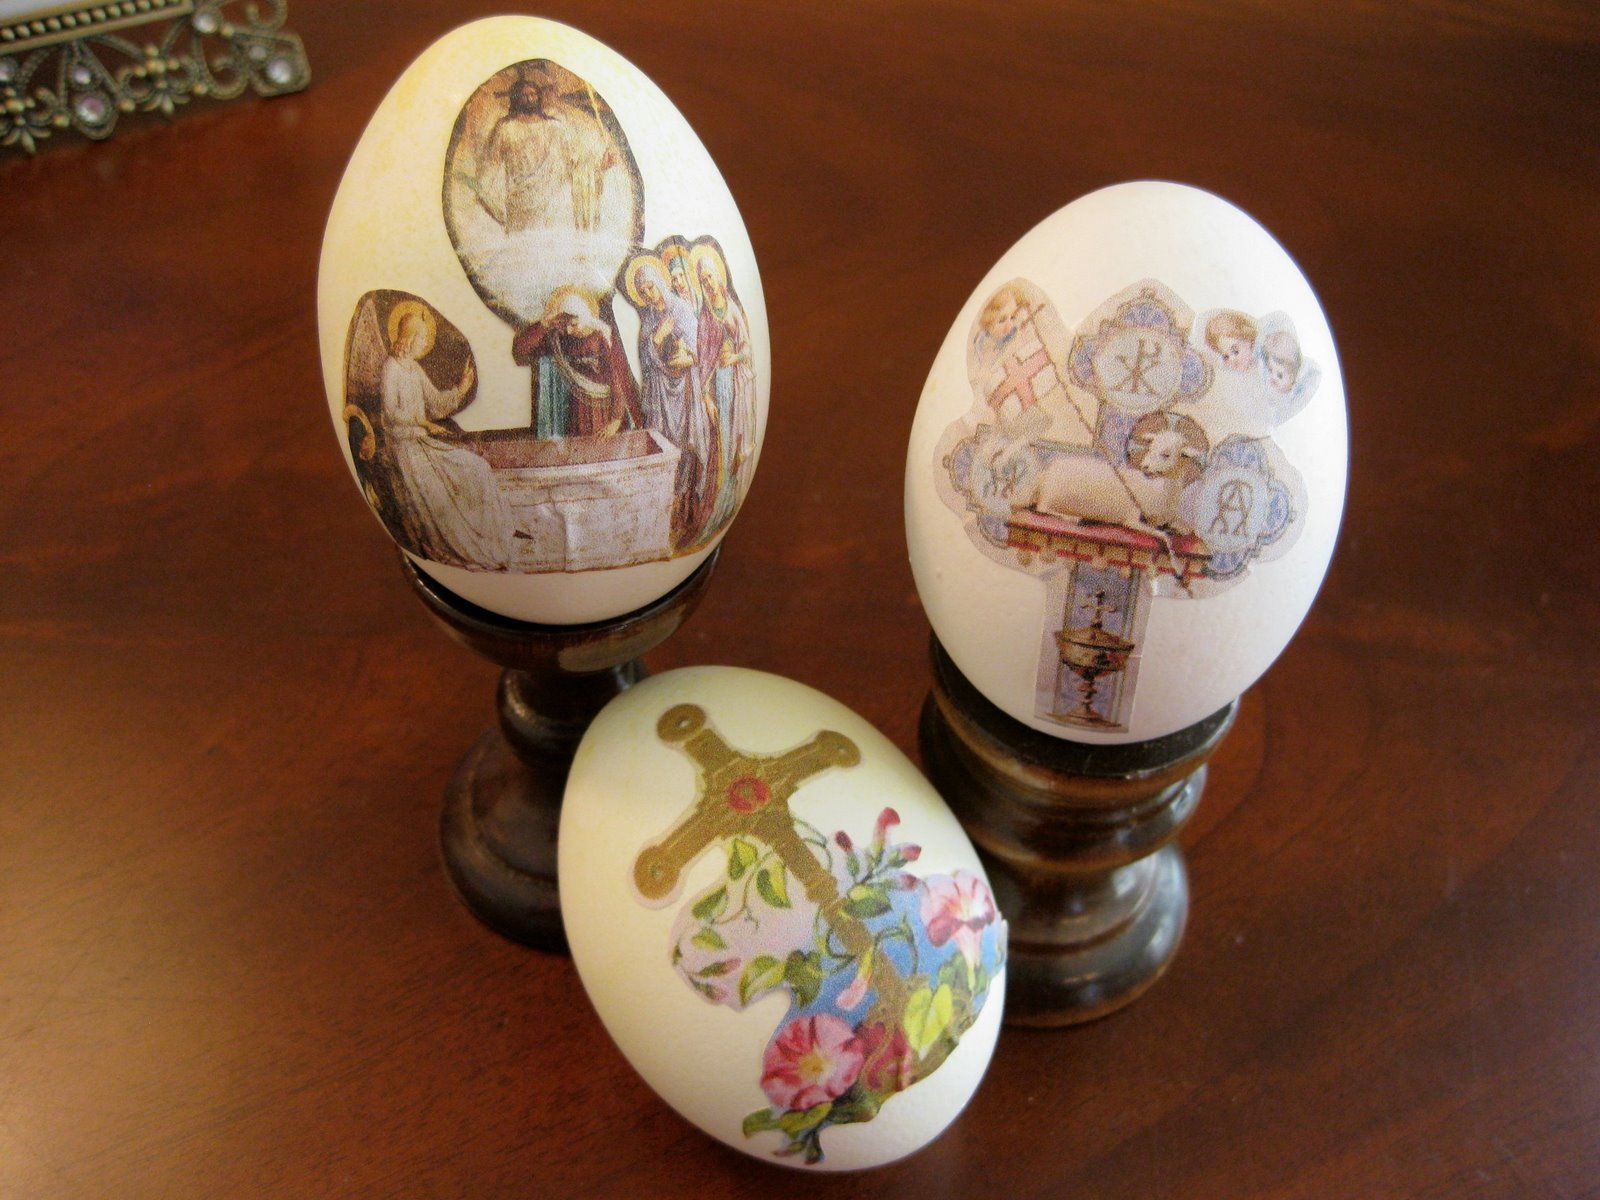 Decoupage Christian Symbols On Your Eggs For Easter Use Blown Out